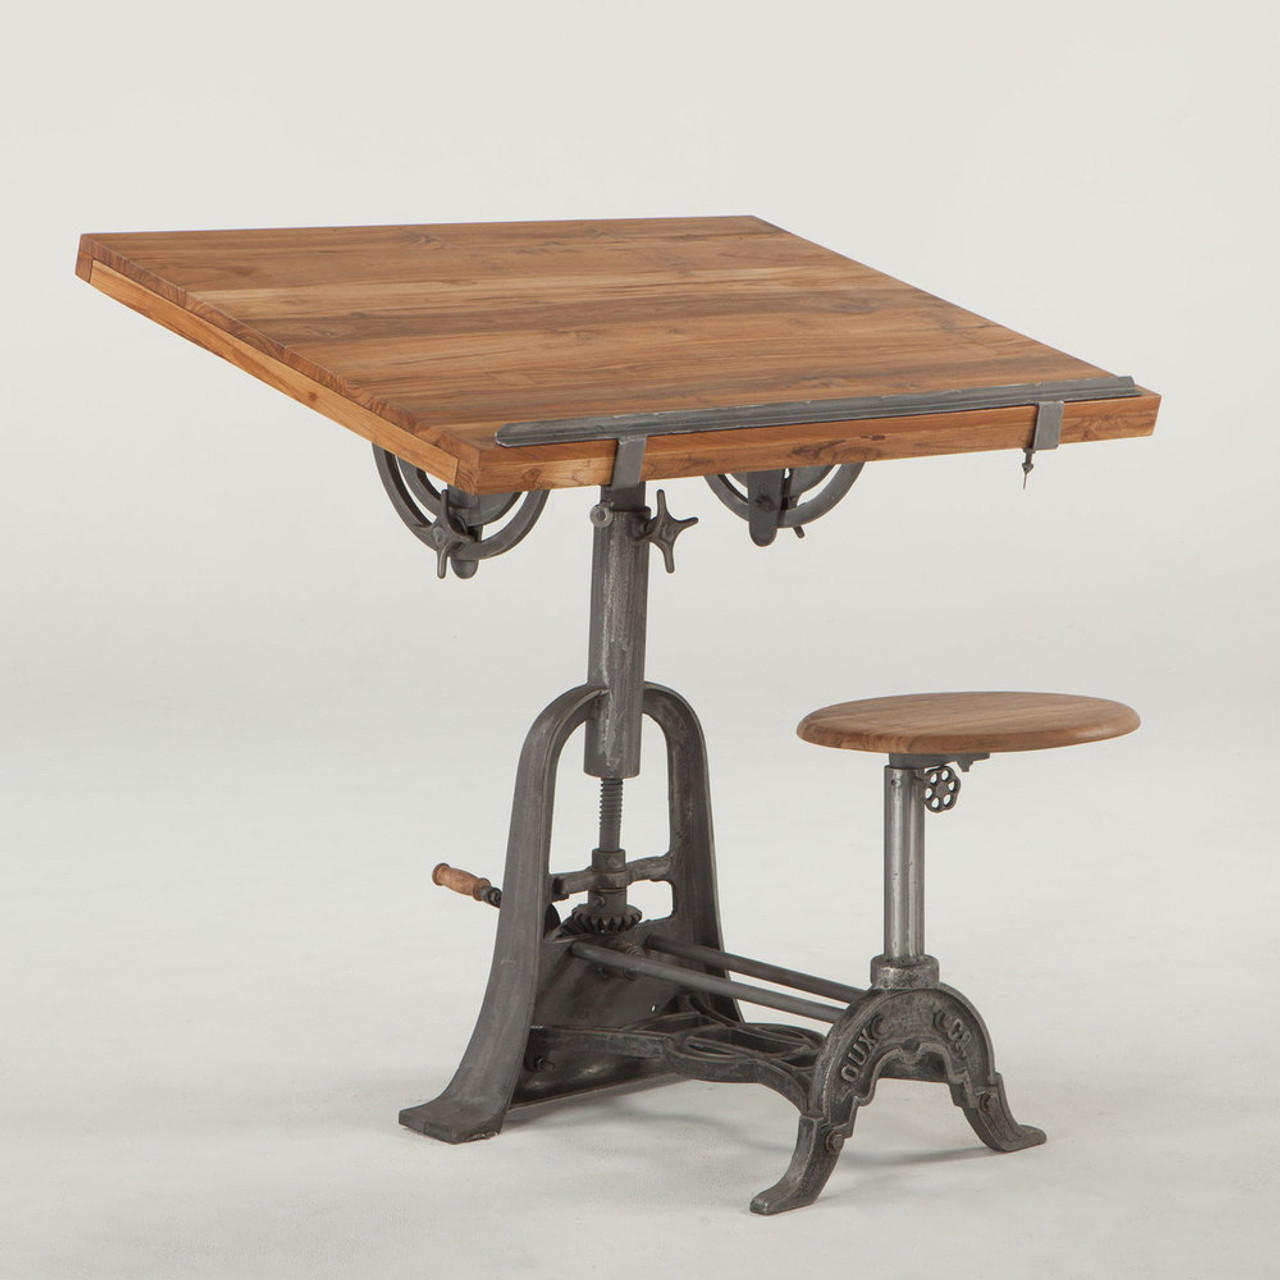 french vintage industrial architect drafting table with attached seat zin home. Black Bedroom Furniture Sets. Home Design Ideas